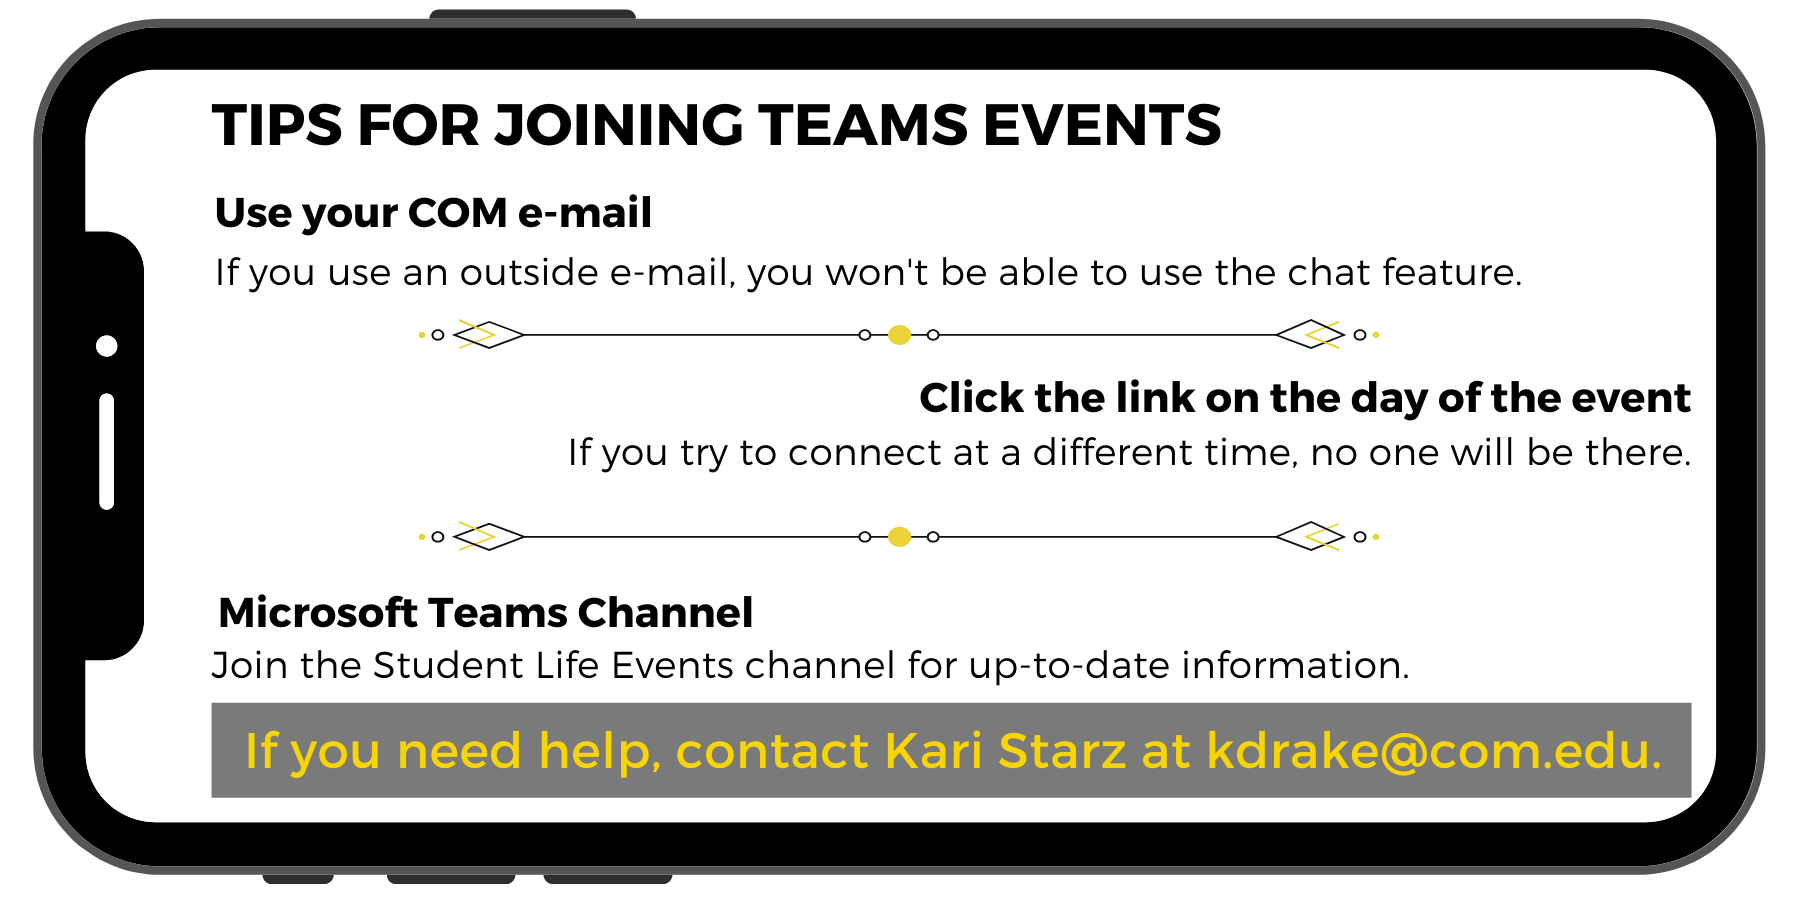 Use your COM email. Click the link on the day of the event.